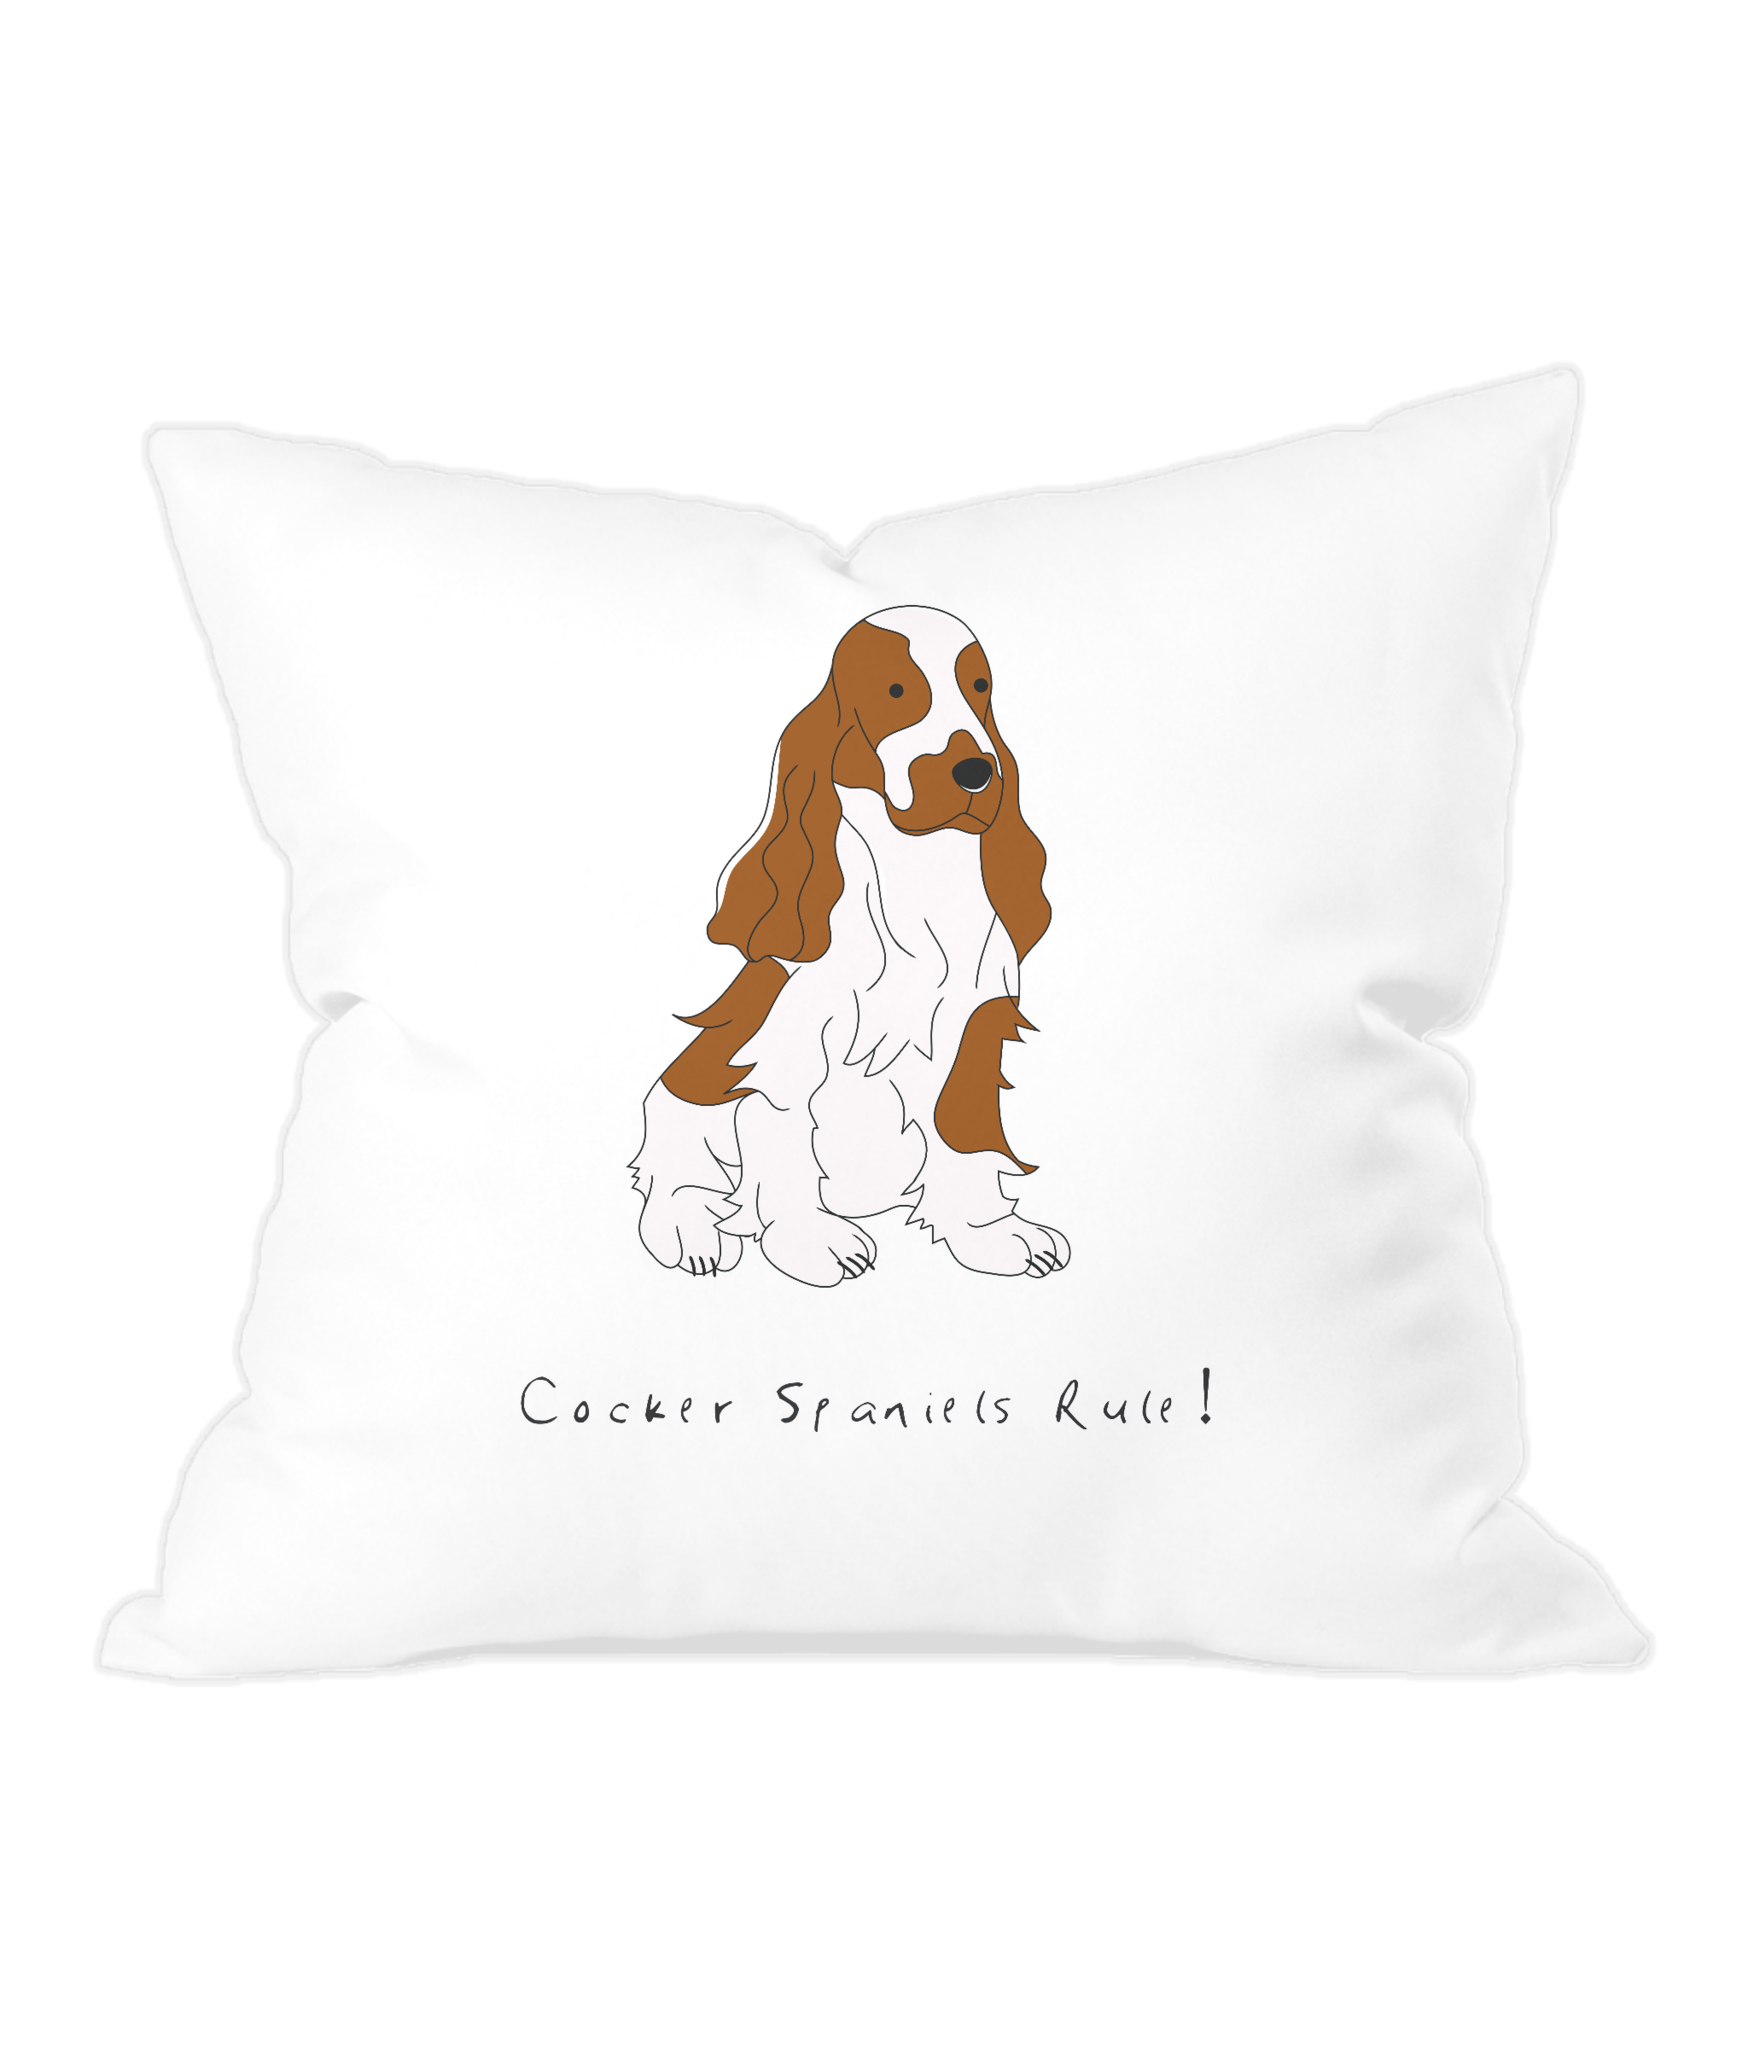 Throw Cushion - Cocker Spaniels Rule!